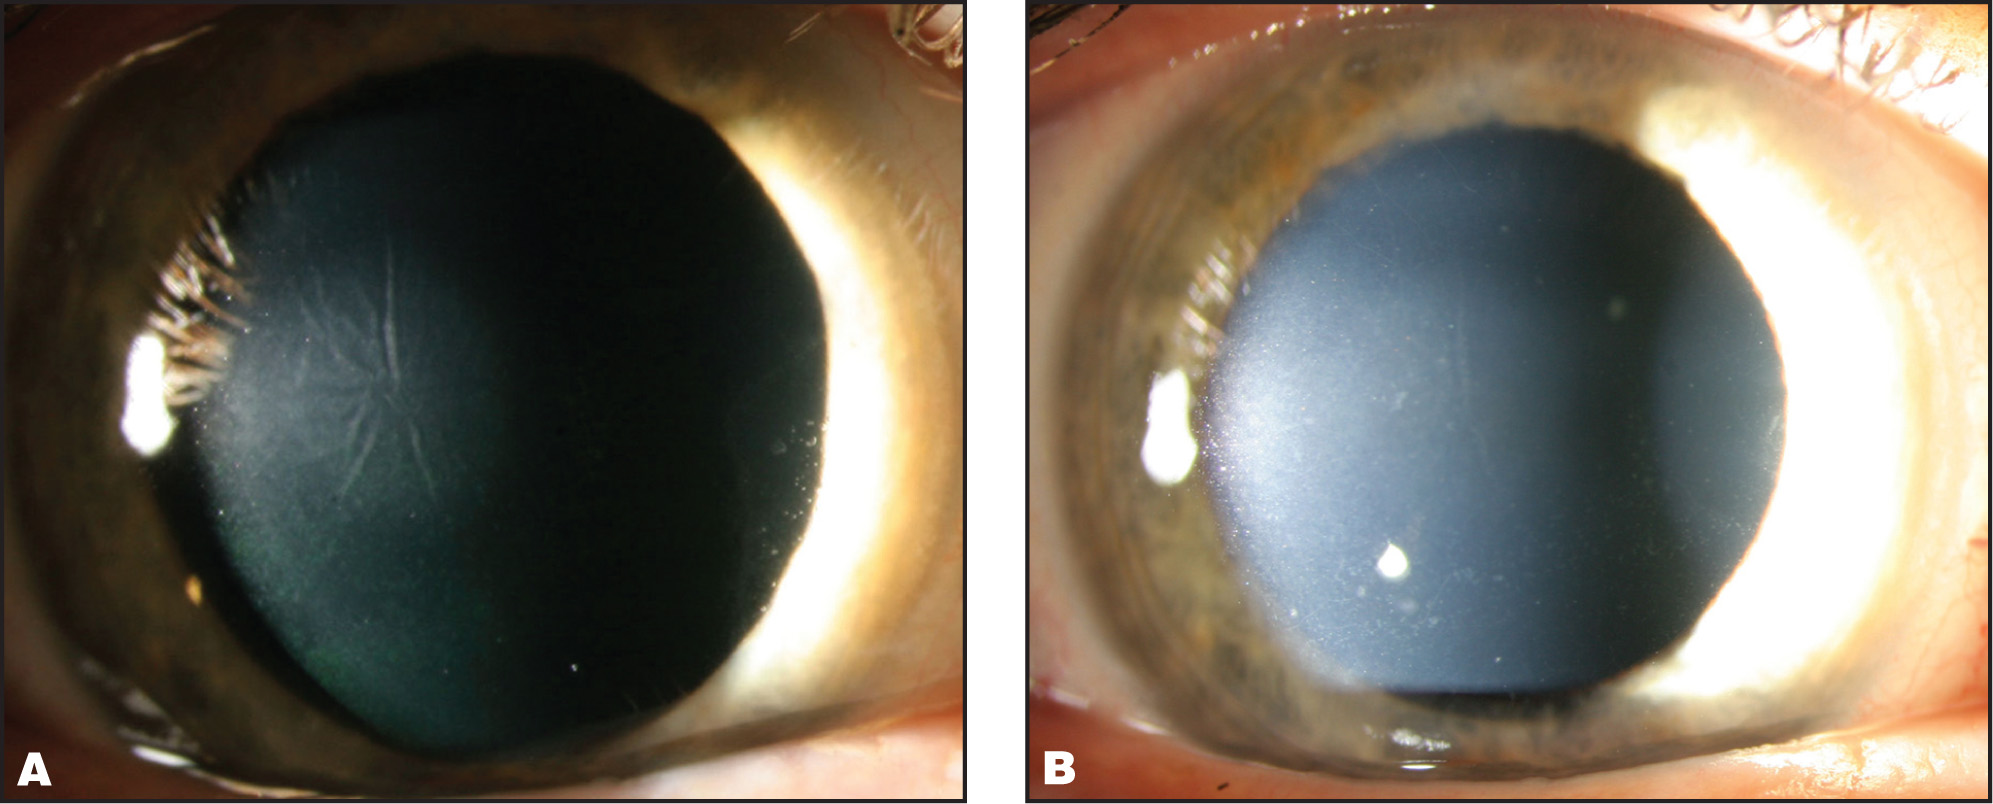 (A) Slit-lamp examination 1 month after surgery revealing central interface opacity, multidirectional striae, and stromal thinning. These are the classic findings of central toxic keratopathy. (B) Four months after surgery, showing only mild resolving residual central haze.